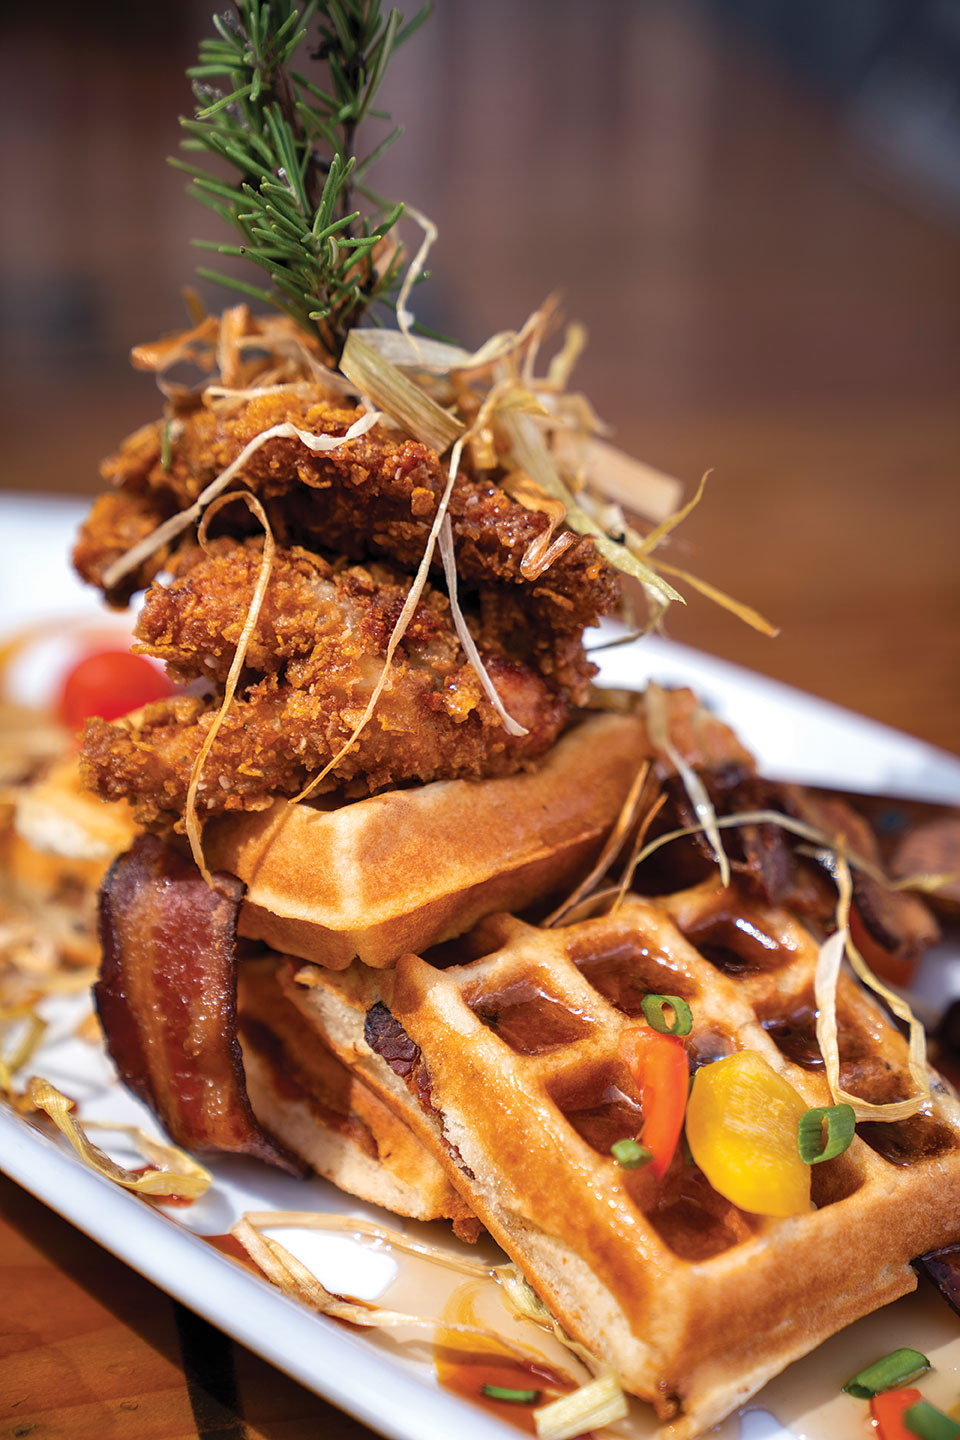 The big o' sage friend chicken and waffle tower at San Diego's Hash House A Go Go